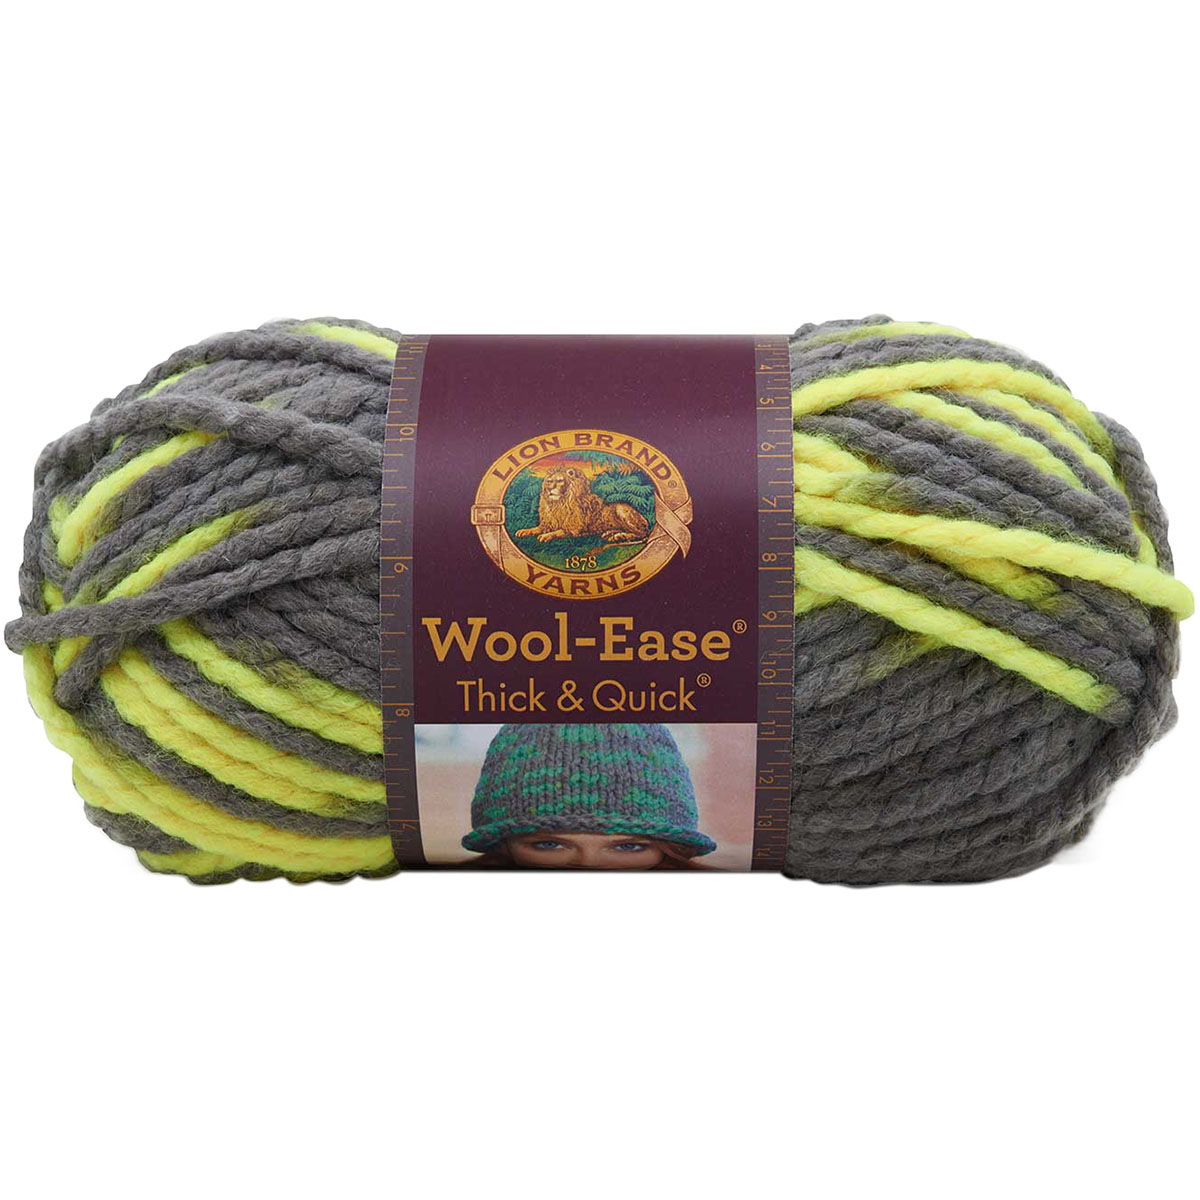 Lion Brand Wool-Ease Thick and Quick Yarn, Toucan Multi-Colored